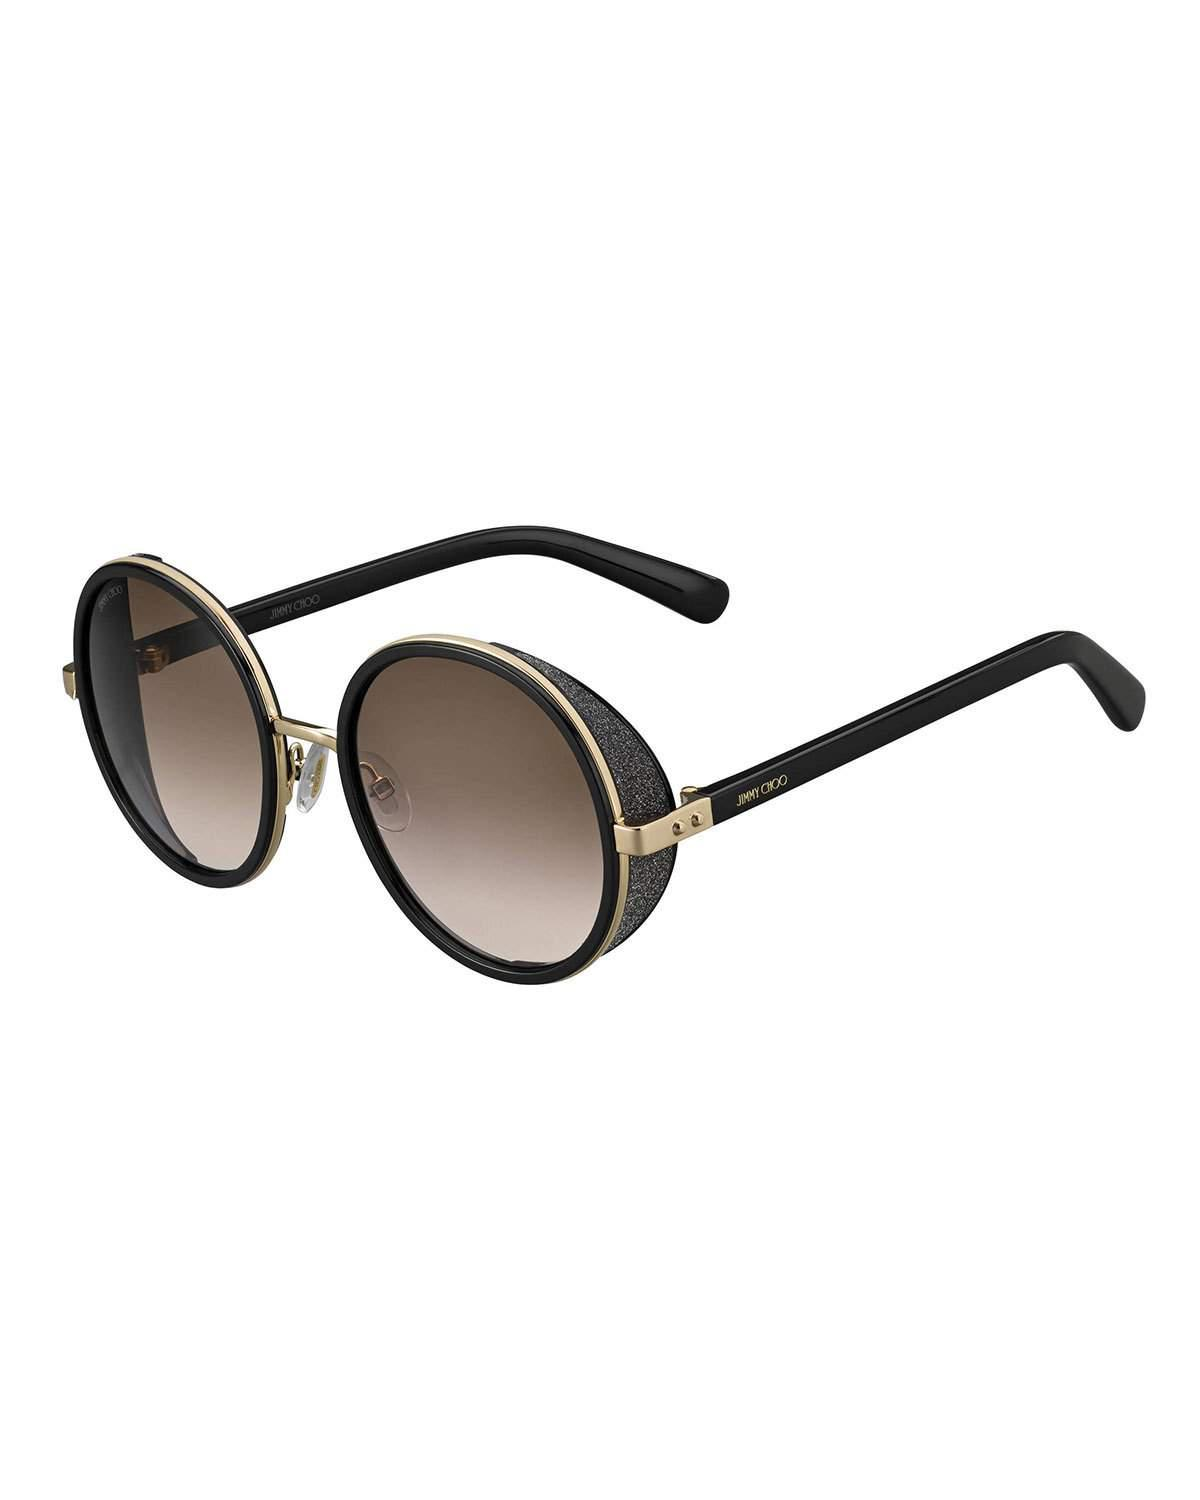 0cbfe6656d89 Jimmy Choo Andie Havana Brown Acetate Round Framed Sunglasses With Gold  Silver Crystal Fabric Detailing In